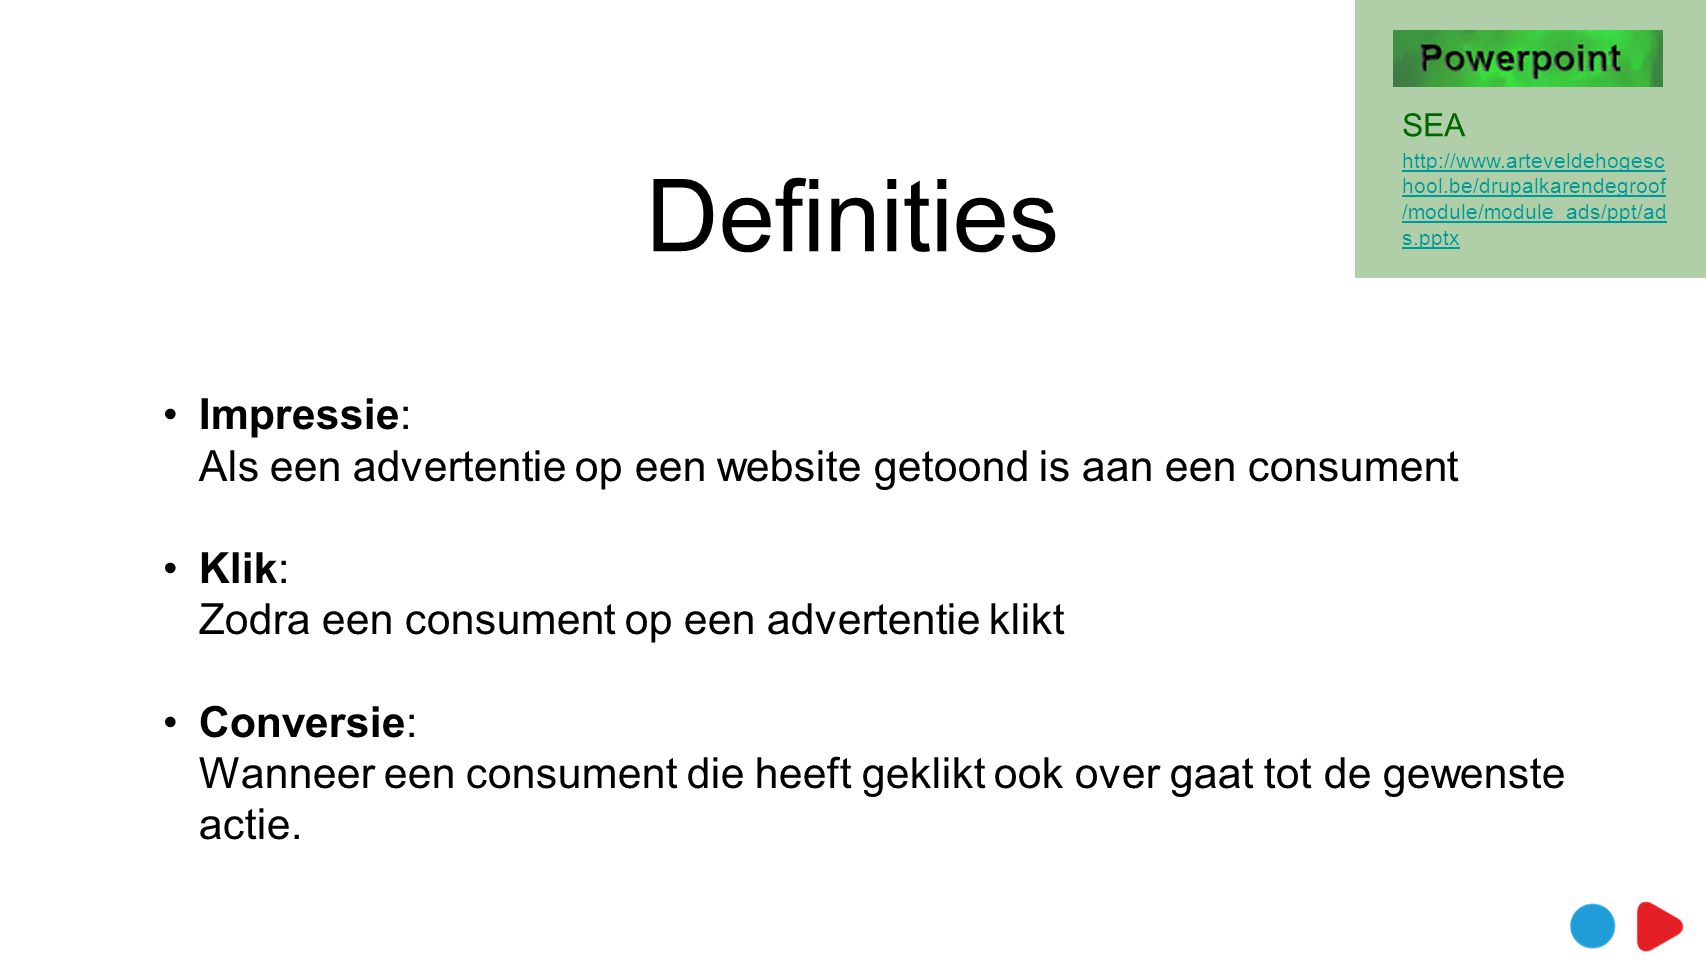 Definities SEA. http://www.arteveldehogeschool.be/drupalkarendegroof/module/module_ads/ppt/ads.pptx.